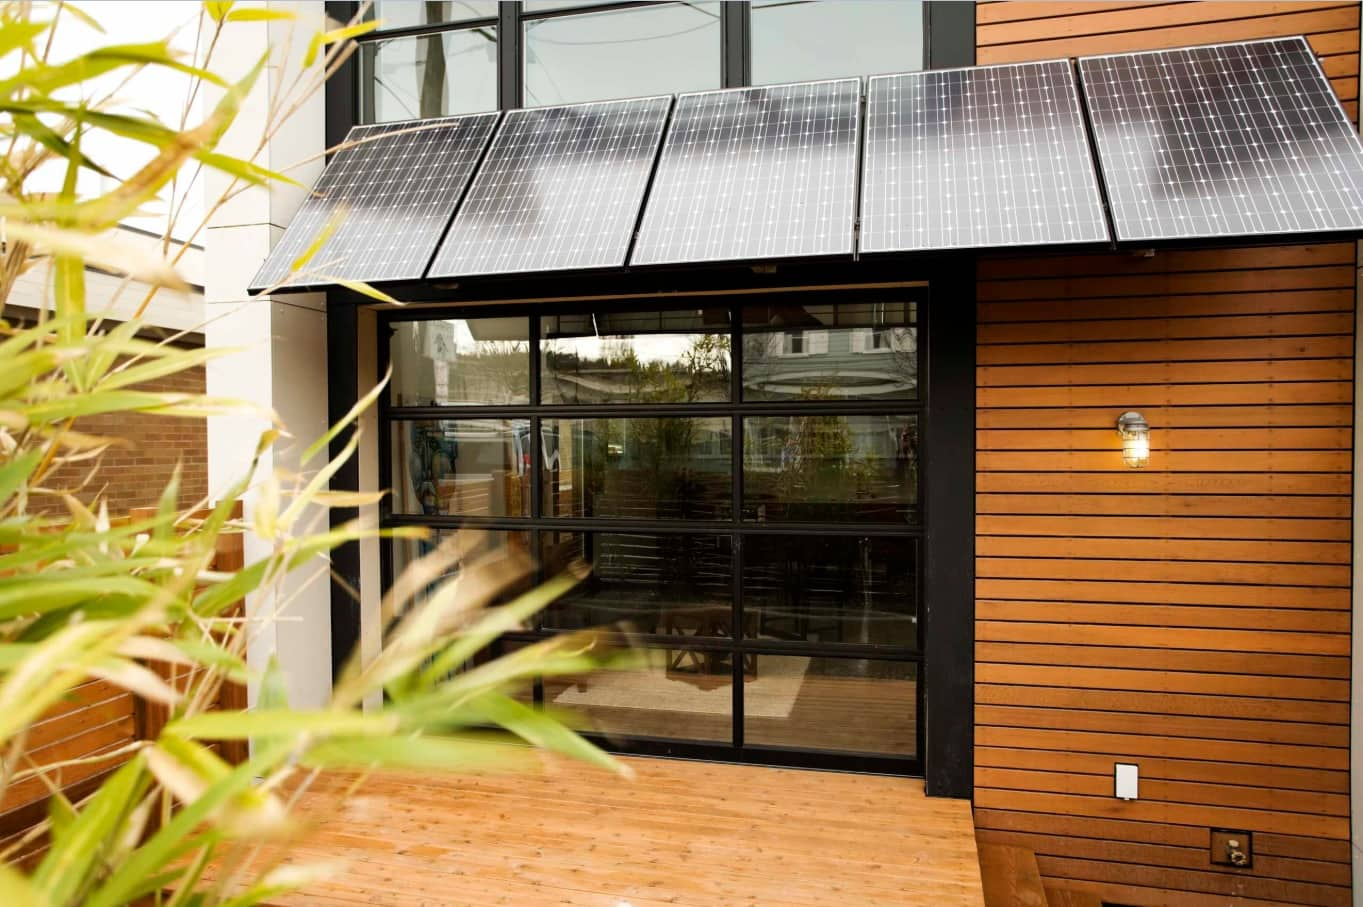 12 Ways You Could Make Your Home More Eco Friendly. Nice backyard of the modern wooden trimmed house with solar panels at the bulkhead